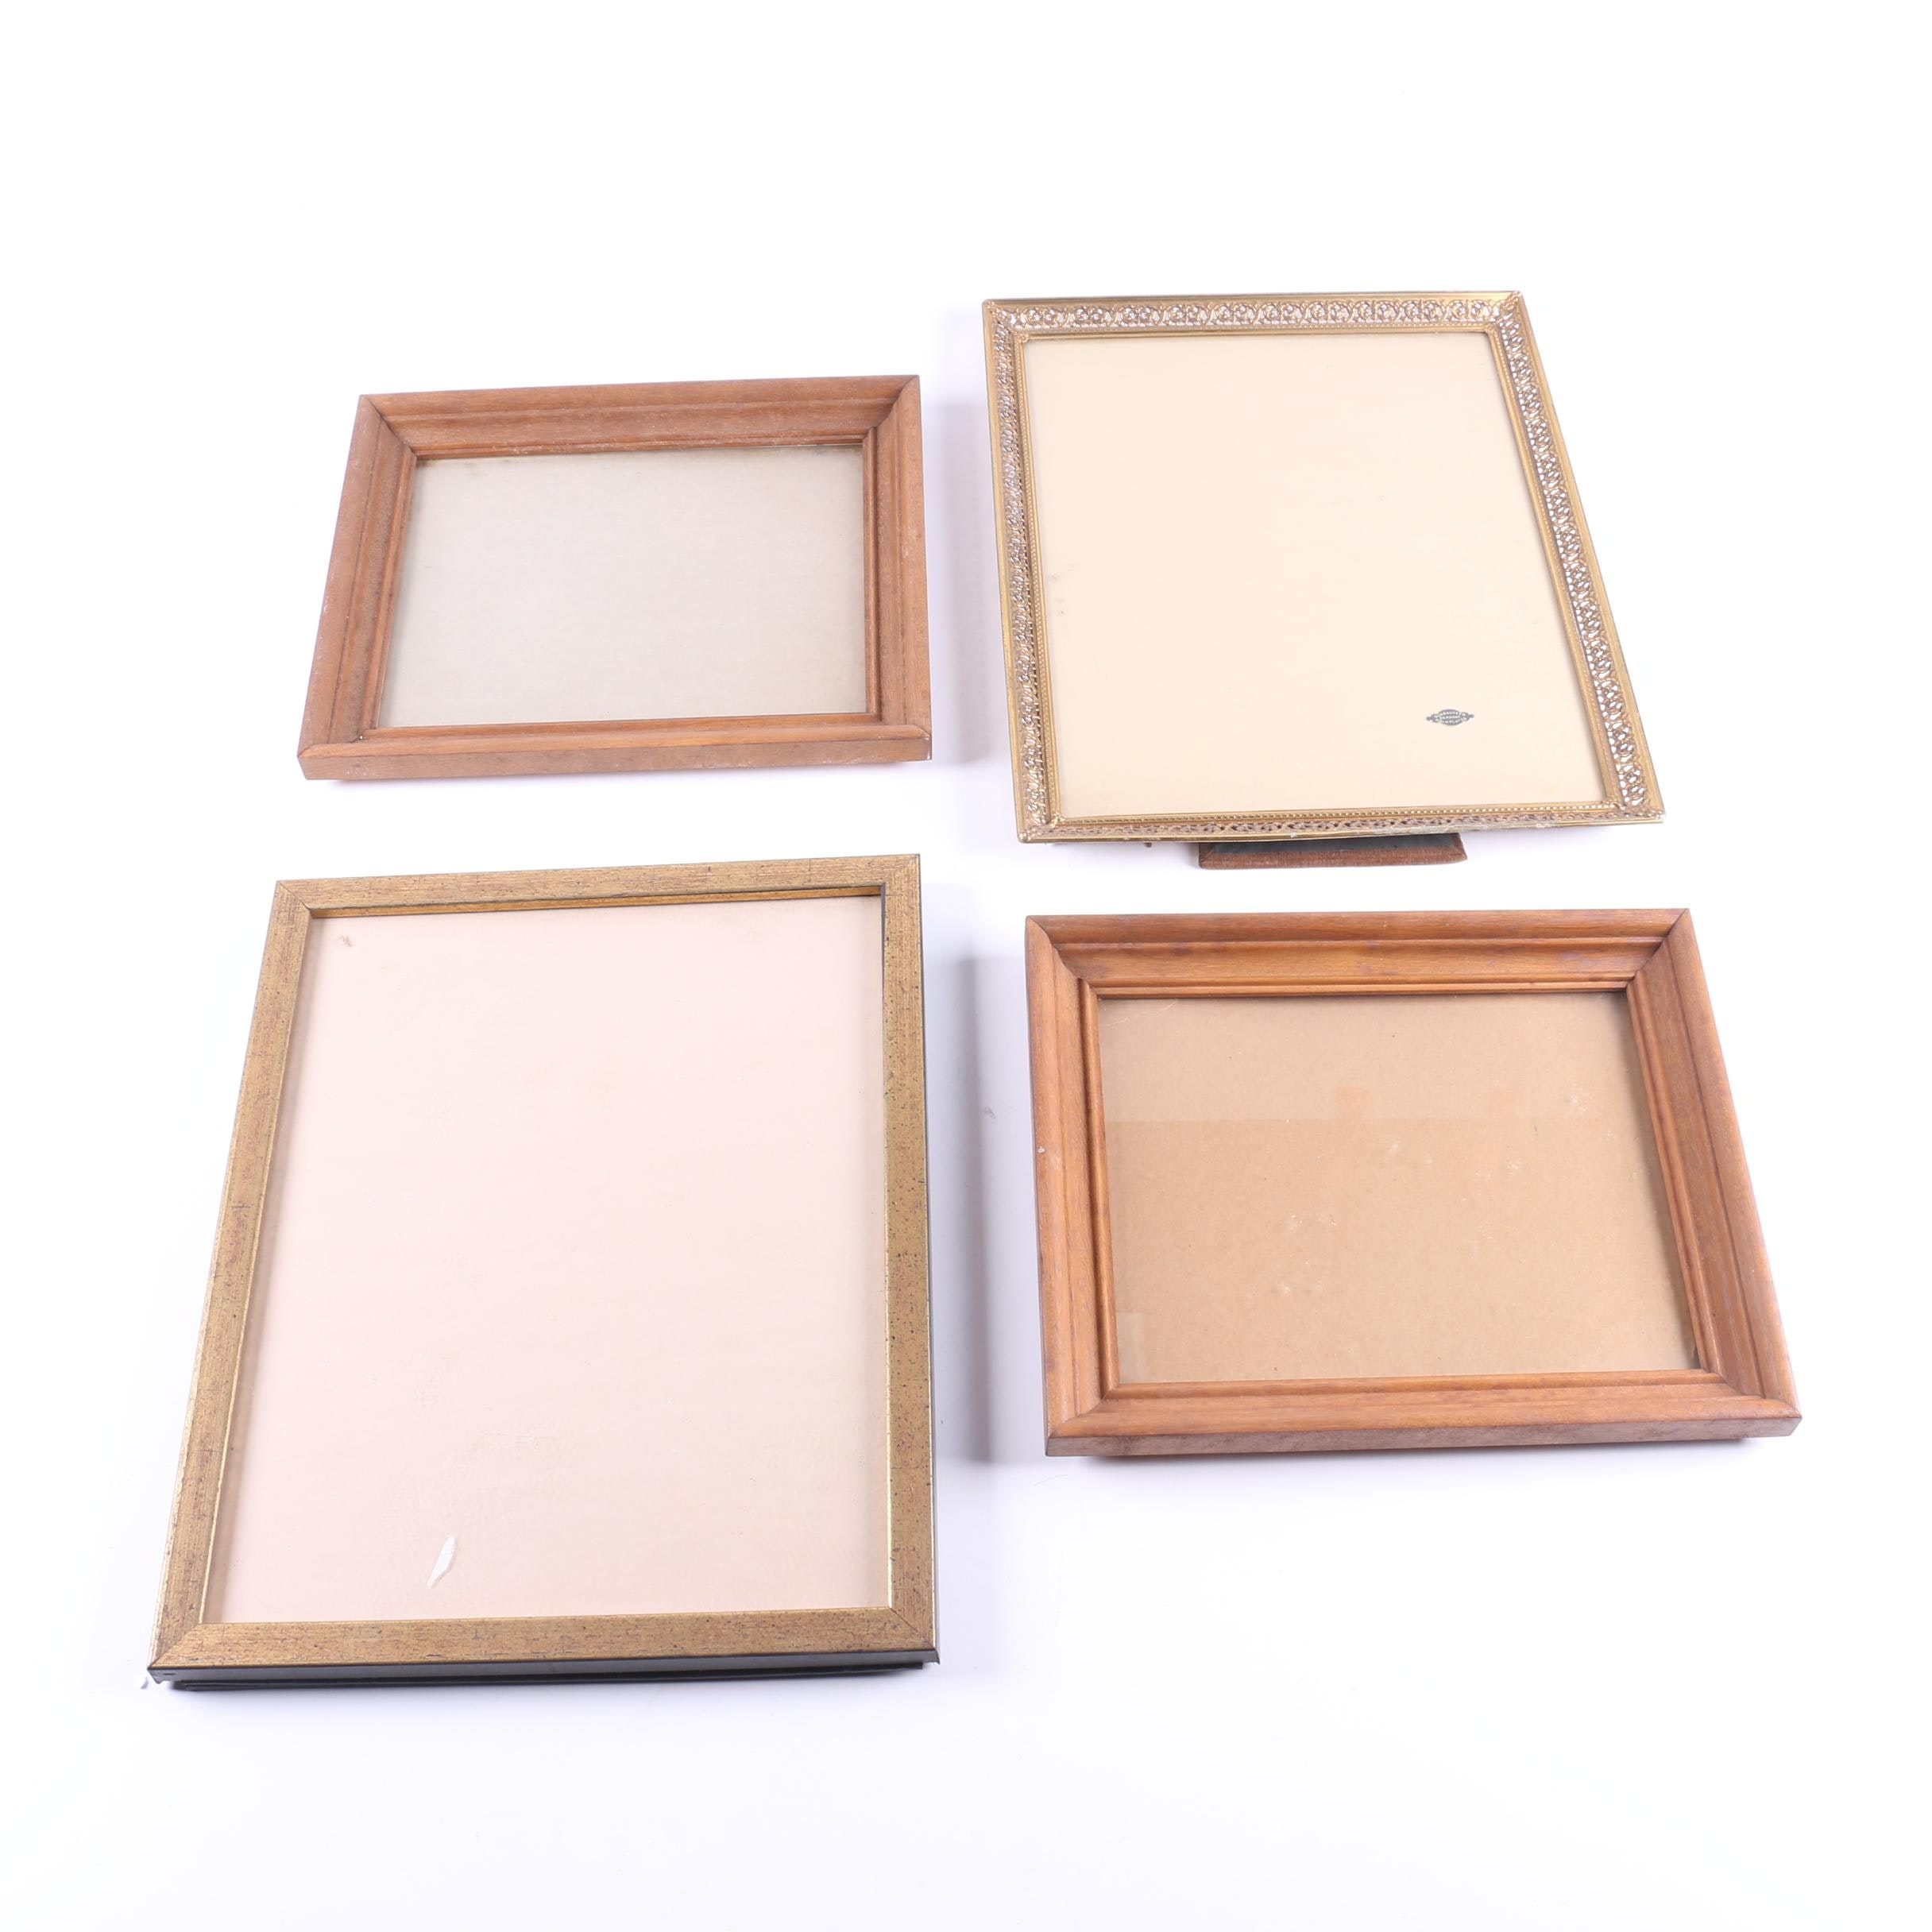 Contemporary Wood and Metal Picture Frames